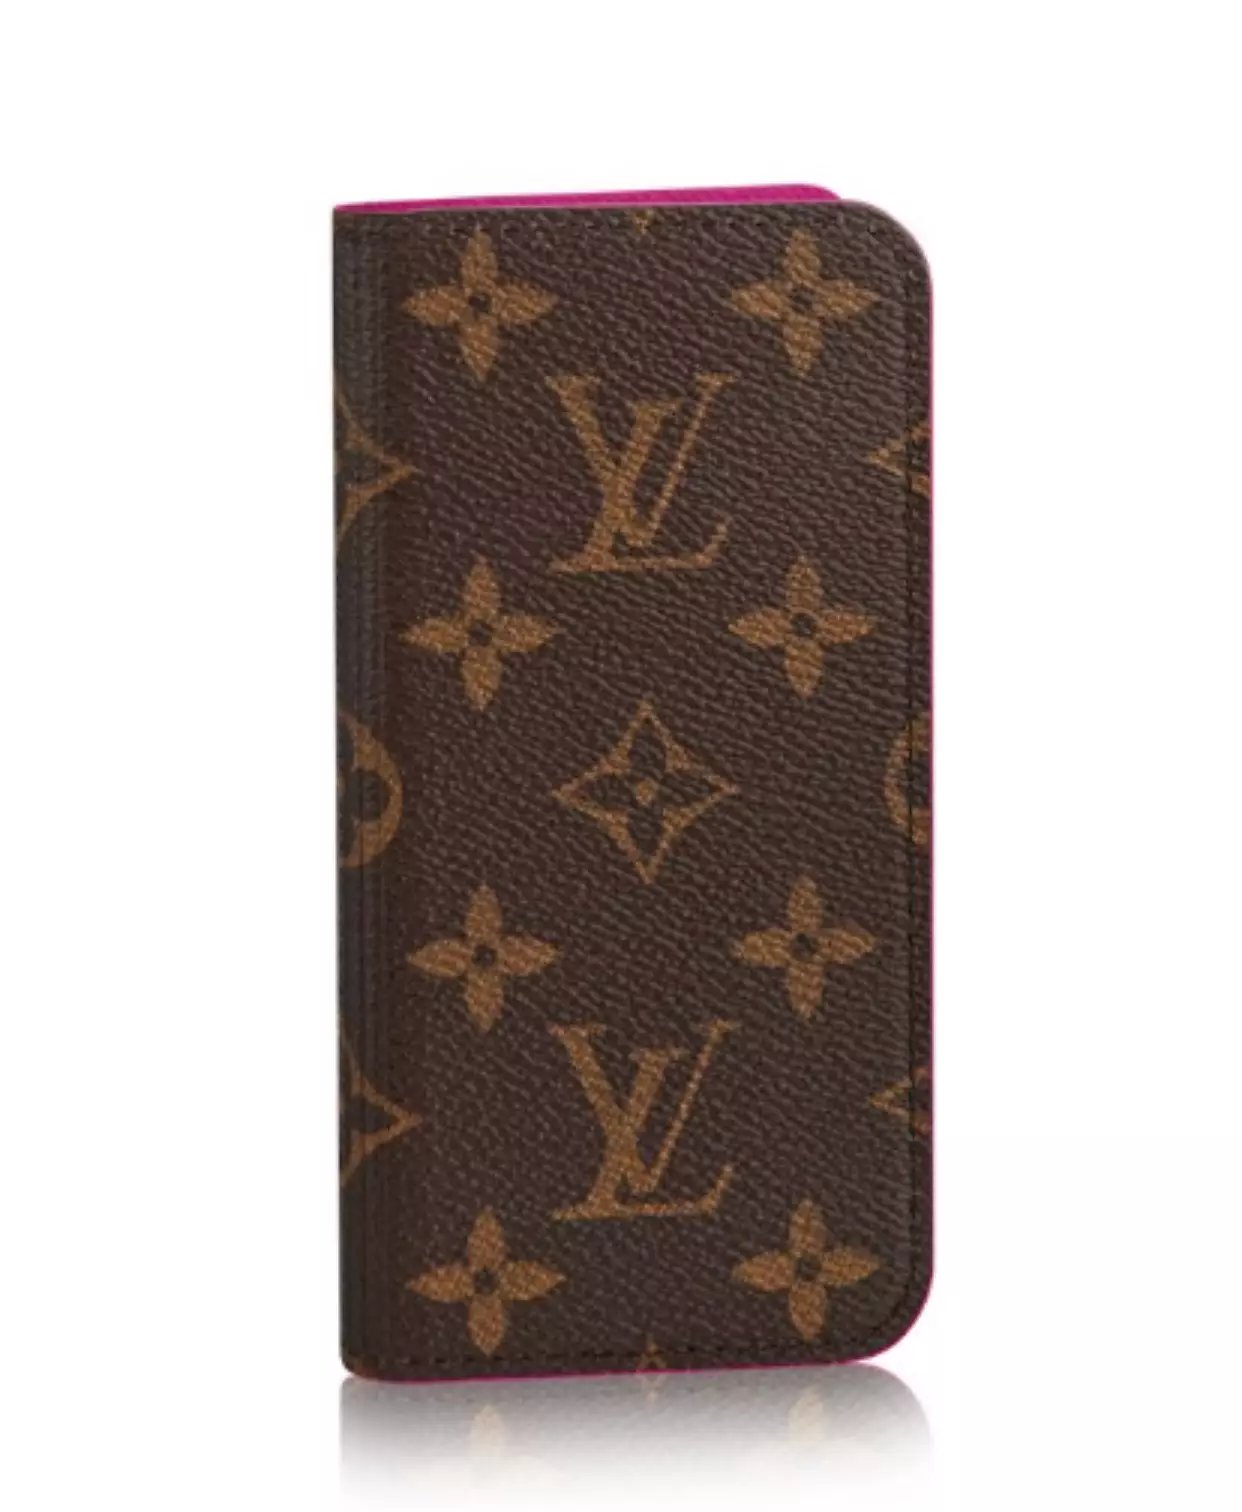 iphone hülle bedrucken hülle iphone Louis Vuitton iphone7 hülle carbon ca7 iphone 7 iphone hülle bedrucken apple store iphone hülle iphone 6 neuigkeiten mumbi iphone 7 handy hülle iphone 7